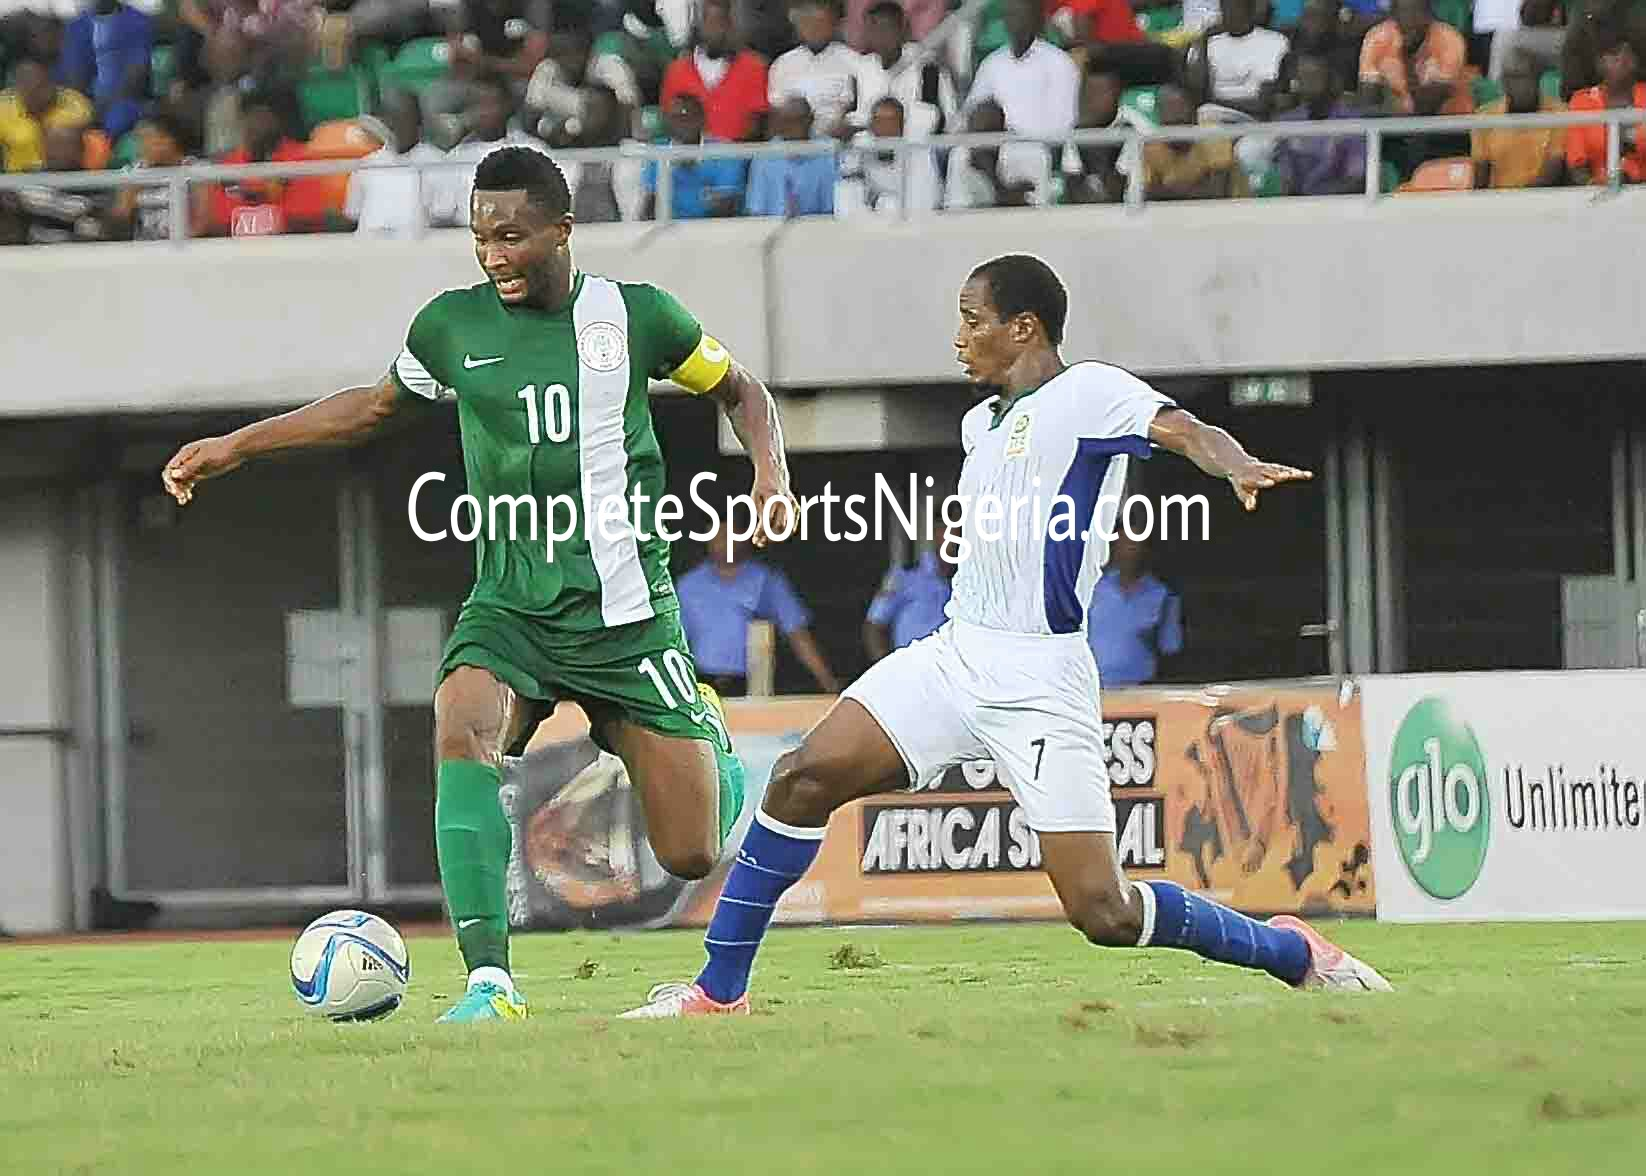 AFCON 2019 Qualifiers: Super Eagles Draw South Africa, Libya, Seychelles